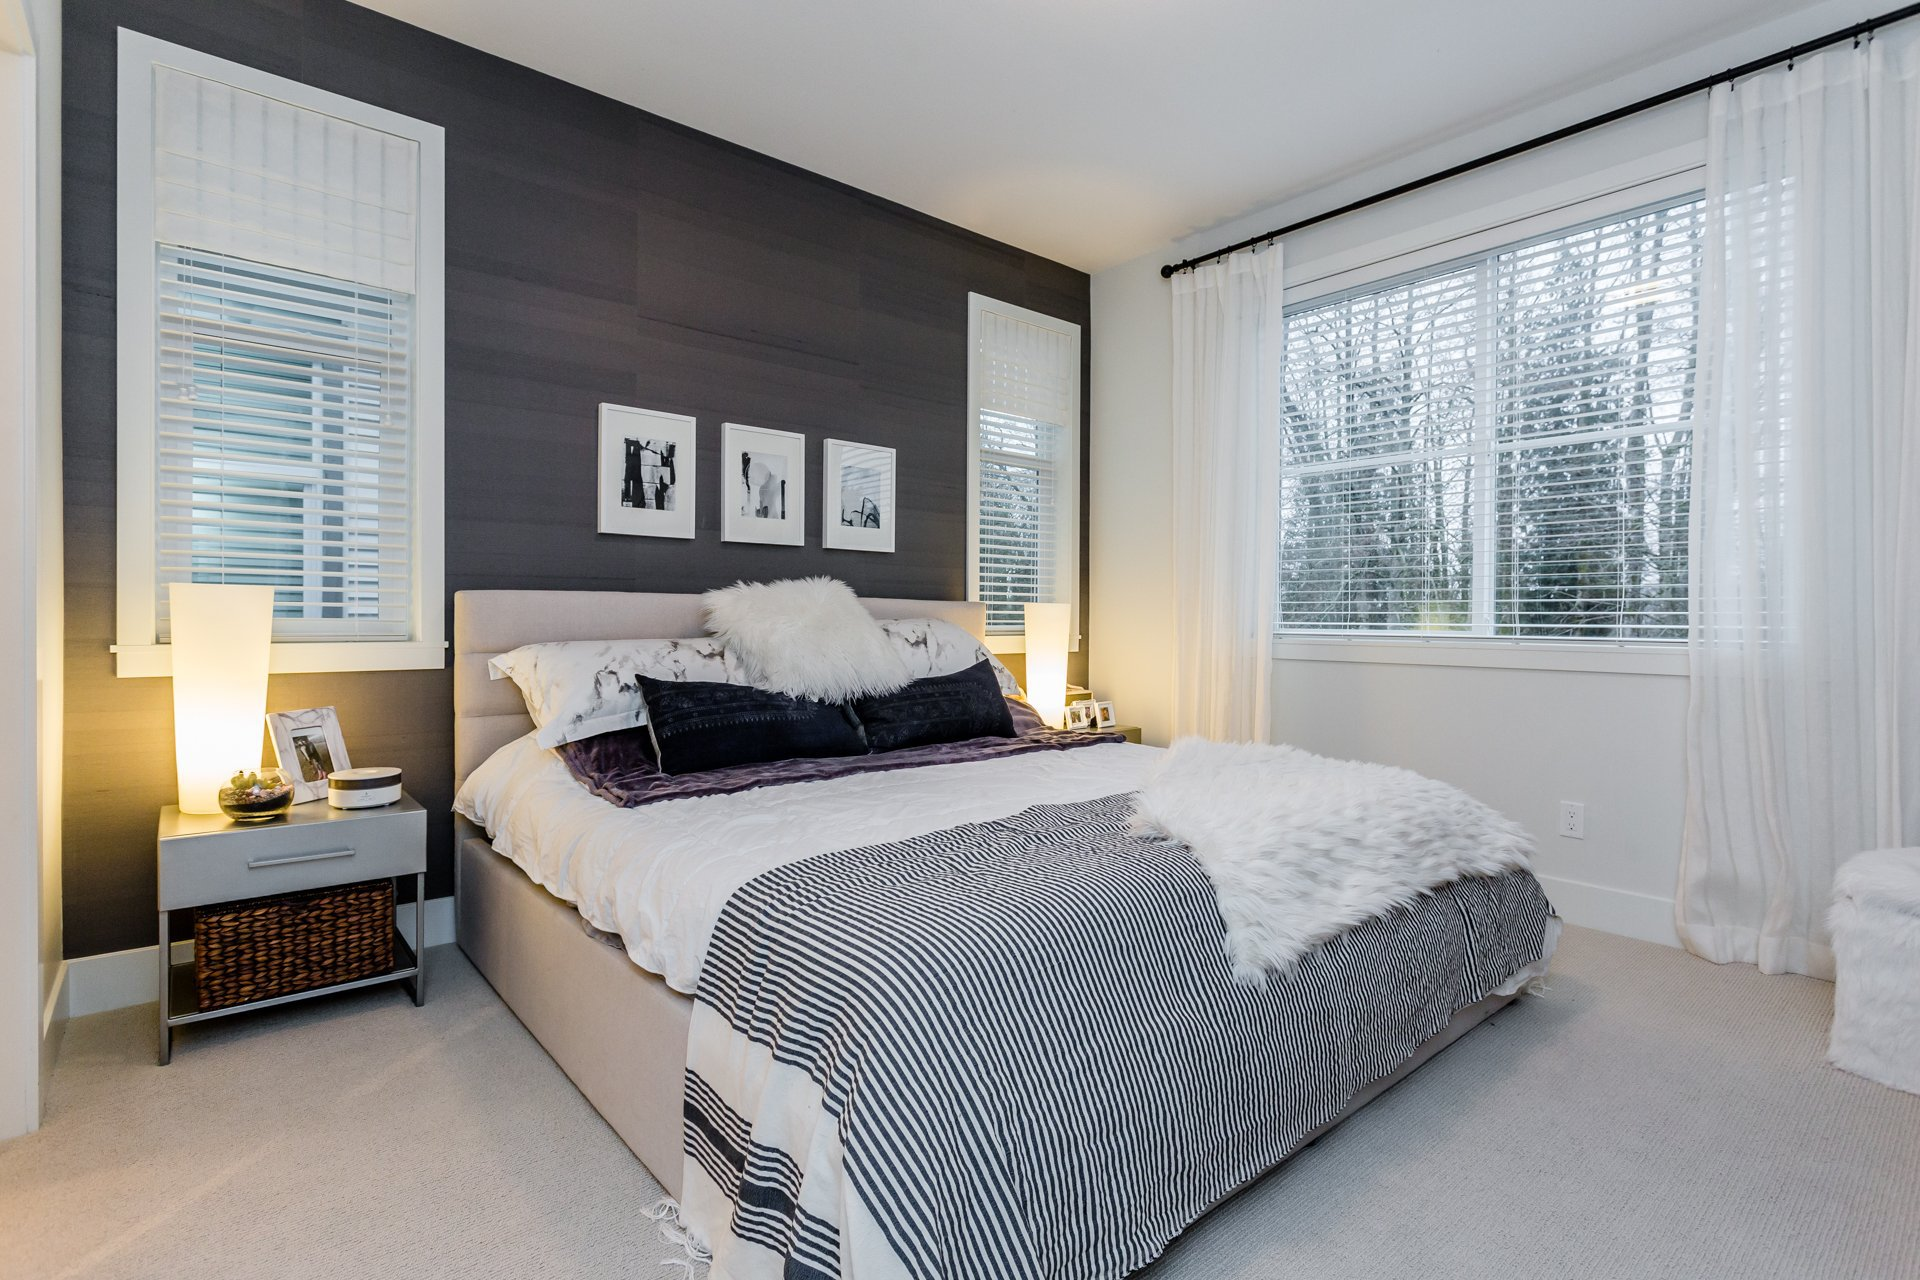 """Photo 23: Photos: 8 8217 204B Street in Langley: Willoughby Heights Townhouse for sale in """"EVERLY GREEN"""" : MLS®# R2236678"""